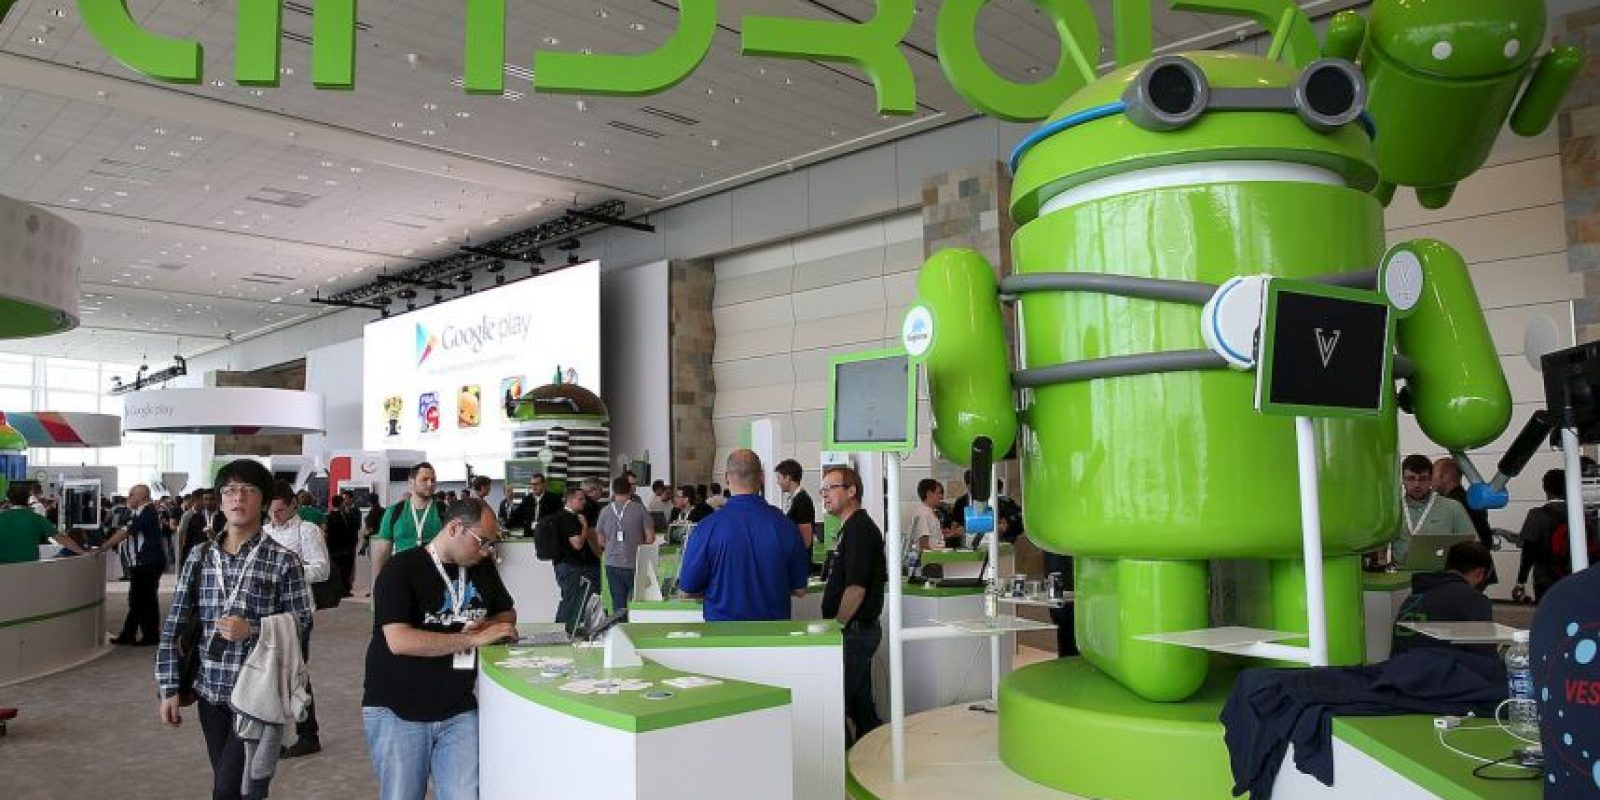 Android Foto: Getty Images